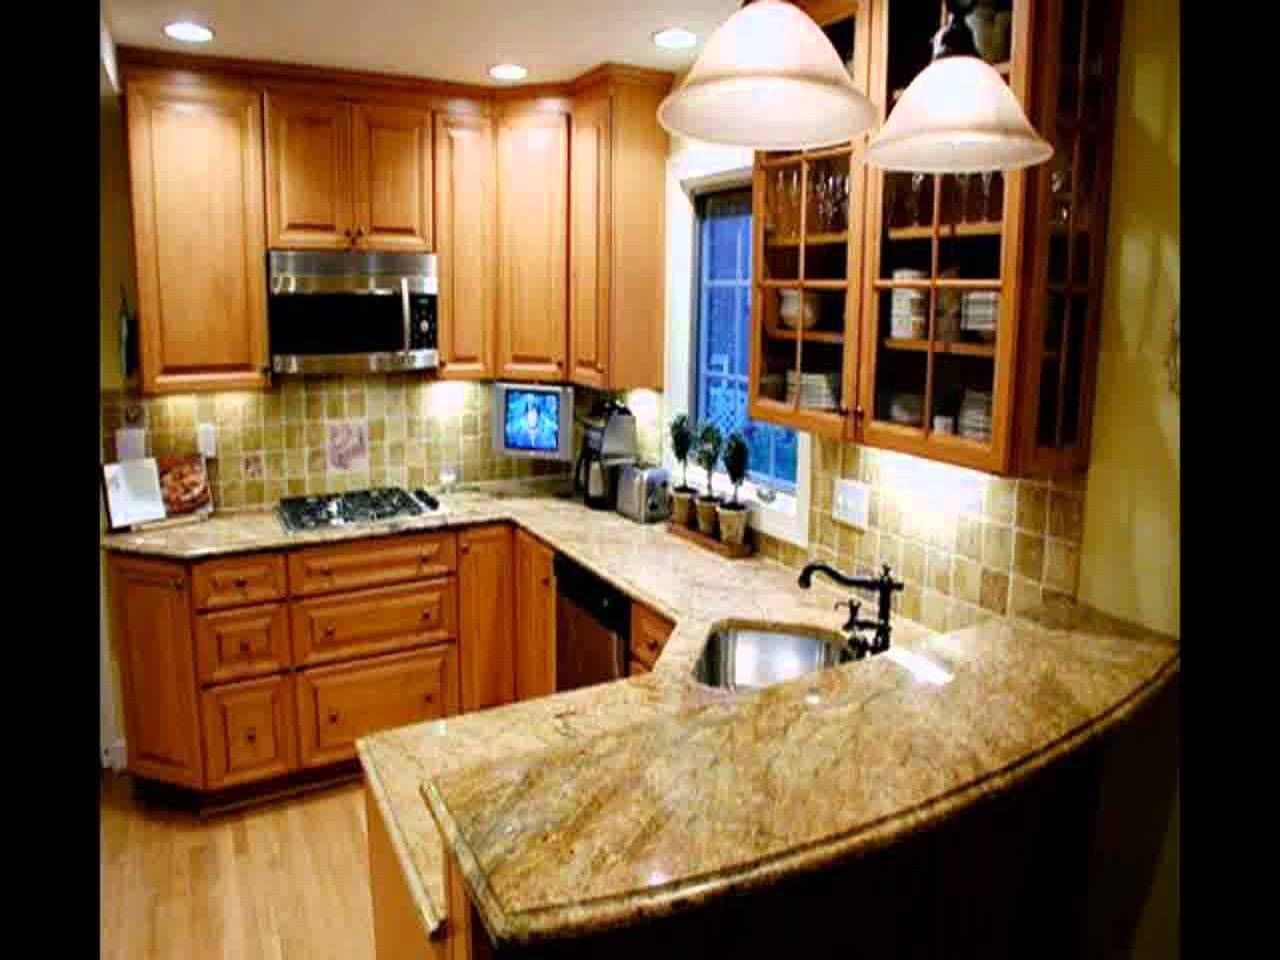 Best Small Kitchen Design Pakistan Youtube Appliances Tall Cupboards Kitcheng Kitchen Remodel Small Modern Kitchen Design Small Kitchen Cabinets